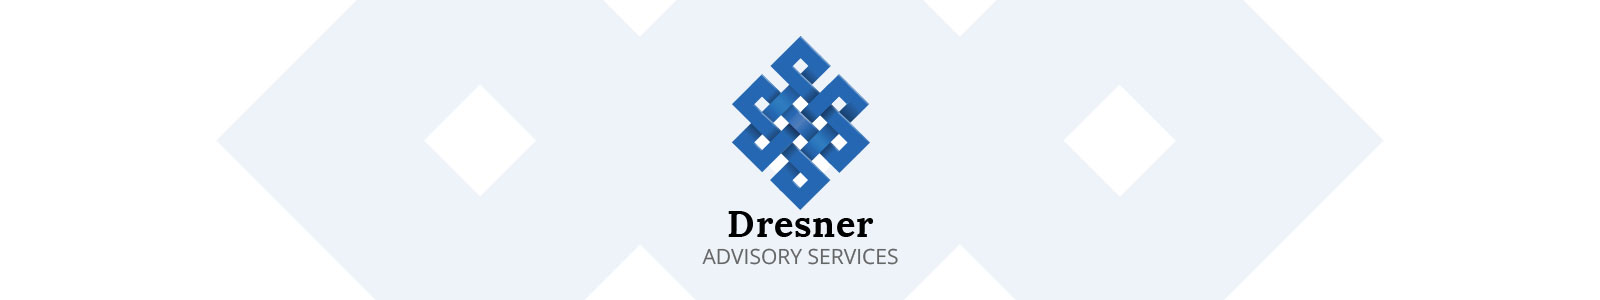 Dresner Advisory - Enterprise Planning Marktstudie 2018